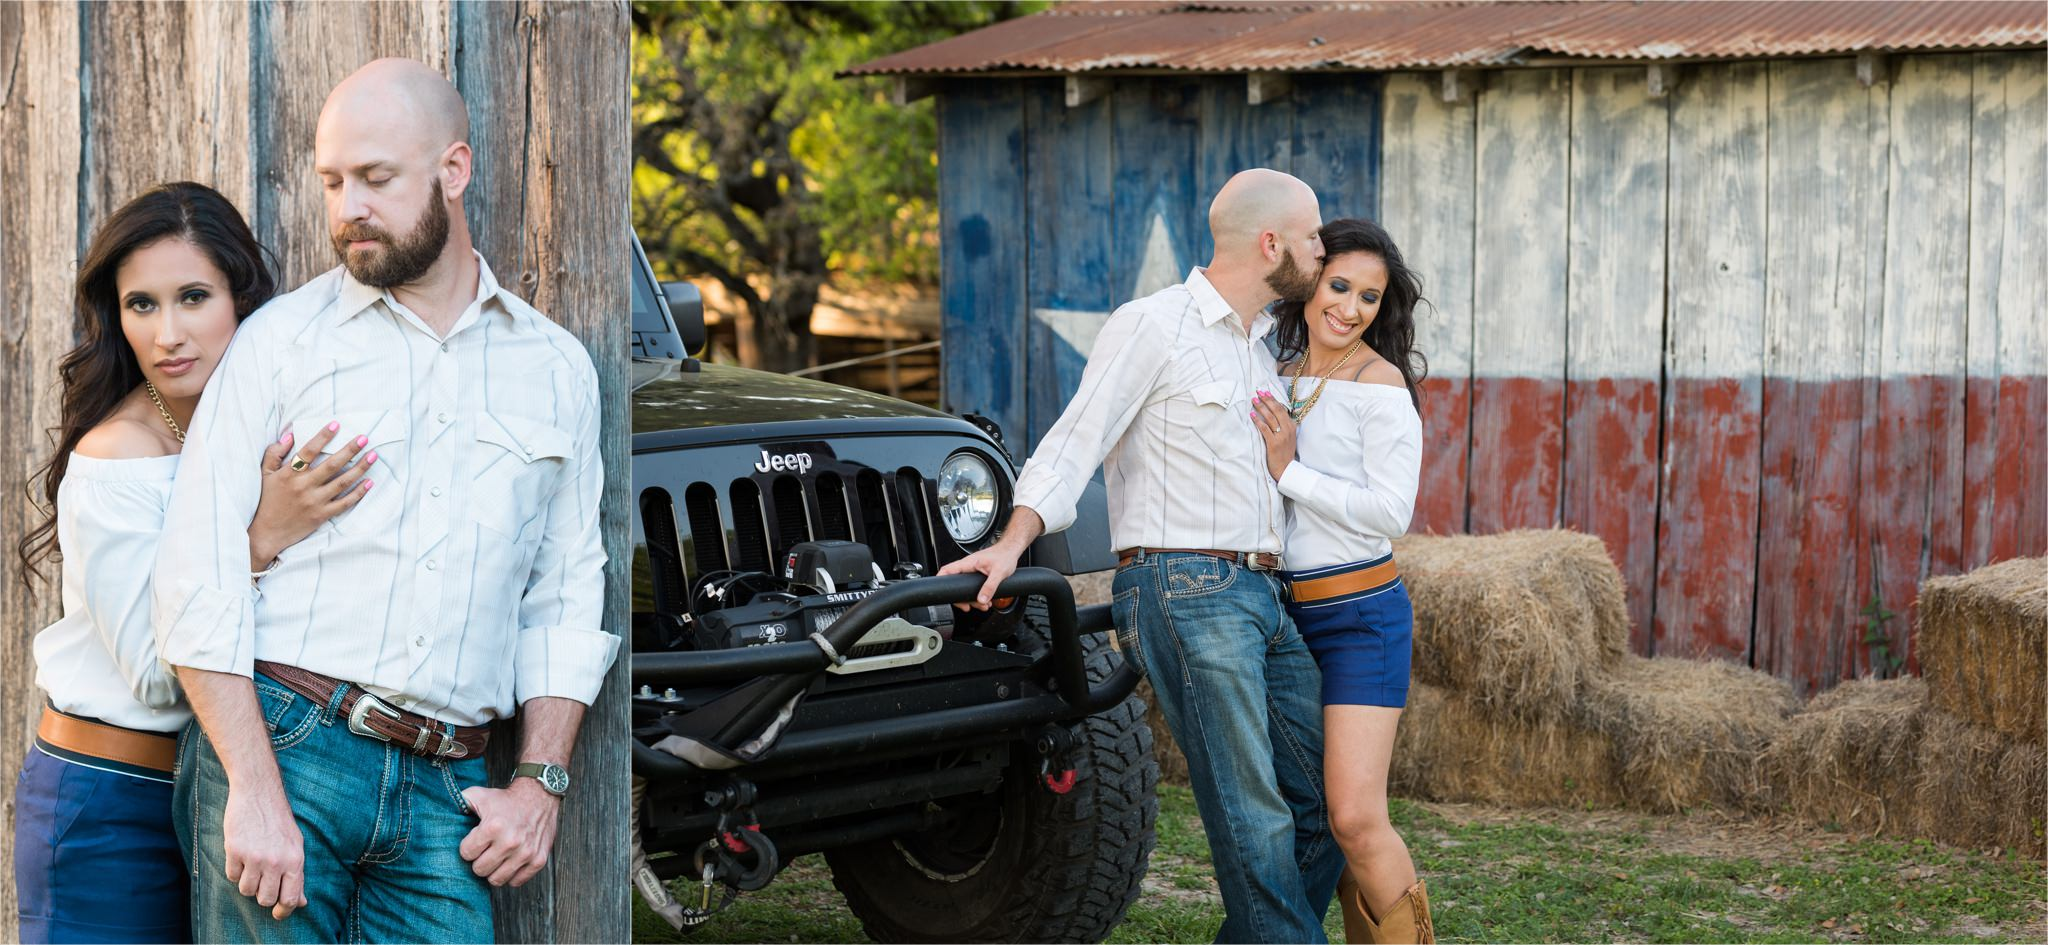 A Rustic Texas Barn Engagement Session | San Antonio, TX.